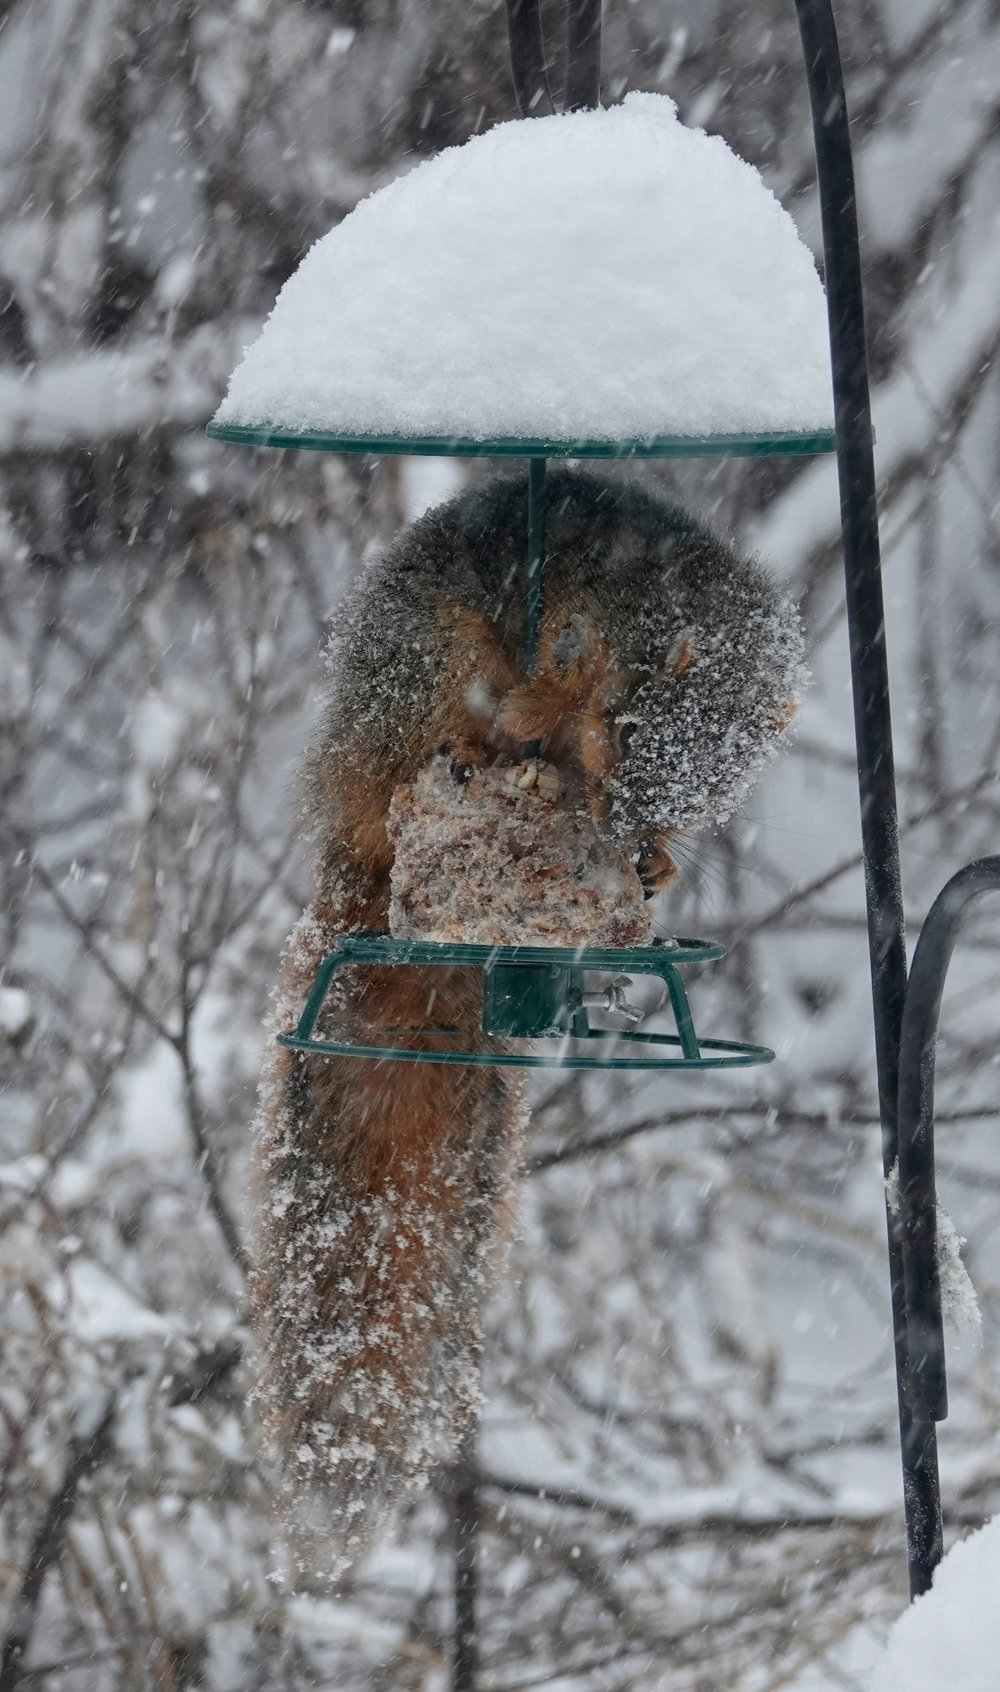 A fox squirrel disguised as snow.